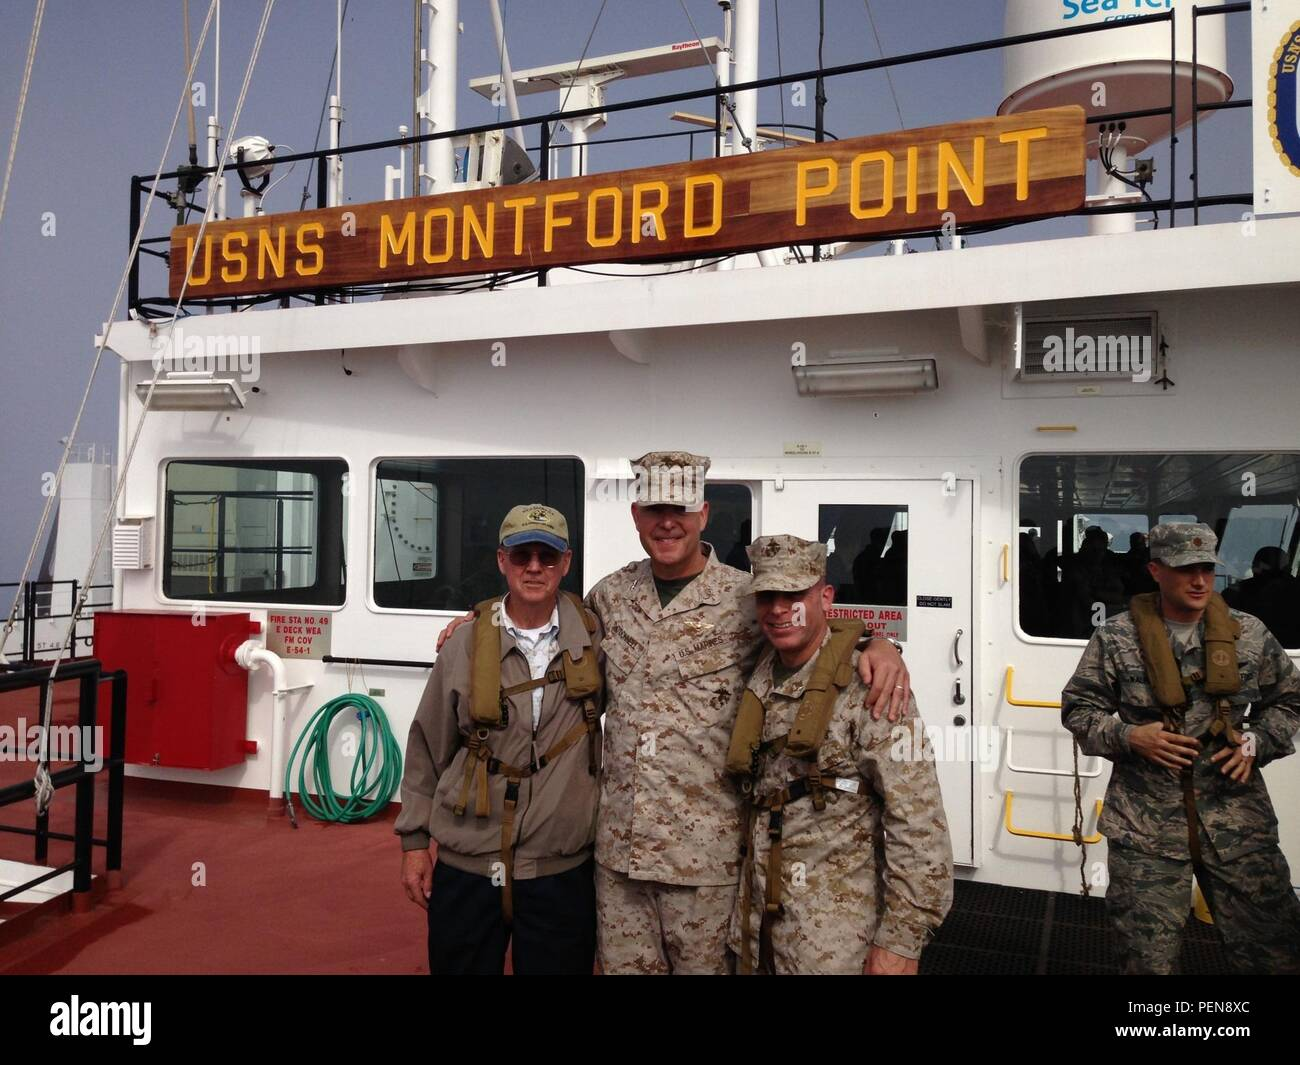 Jim Strock, Maj. Gen. Andrew W. O'Donnell, Jr. and Brig. Gen. Joaquin F. Malavet onboard 'USNS Montford Point,' the lead ship in a class of Mobile Landing Platforms which will be crucial to the seabasing initiative, in Sept. 2014. (Photo courtesy of James Strock) - Stock Image